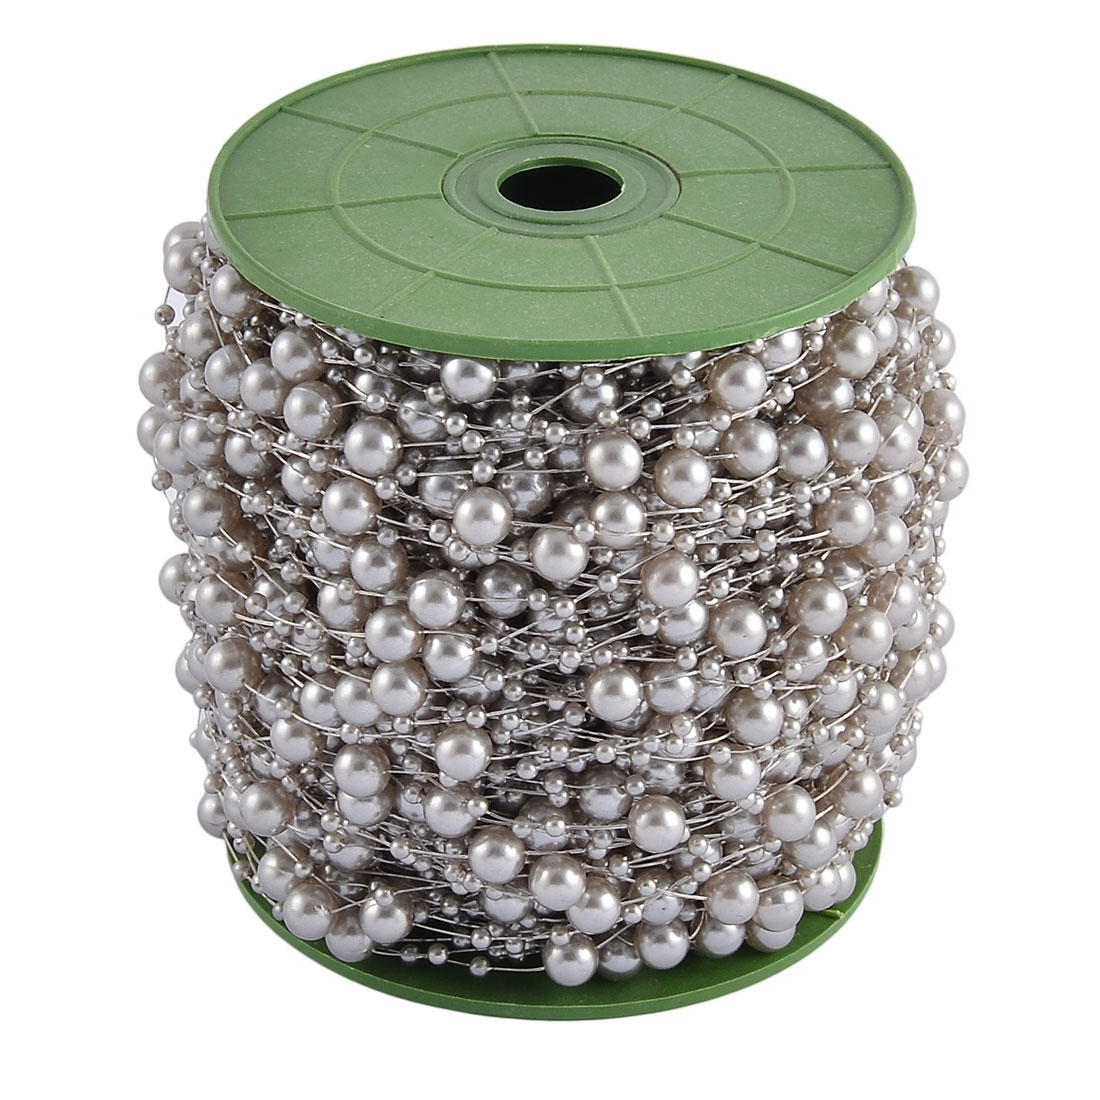 Festival Party Crafting DIY Garland Flower Table Decoration Imitation Pearl Beads String Roll Gray